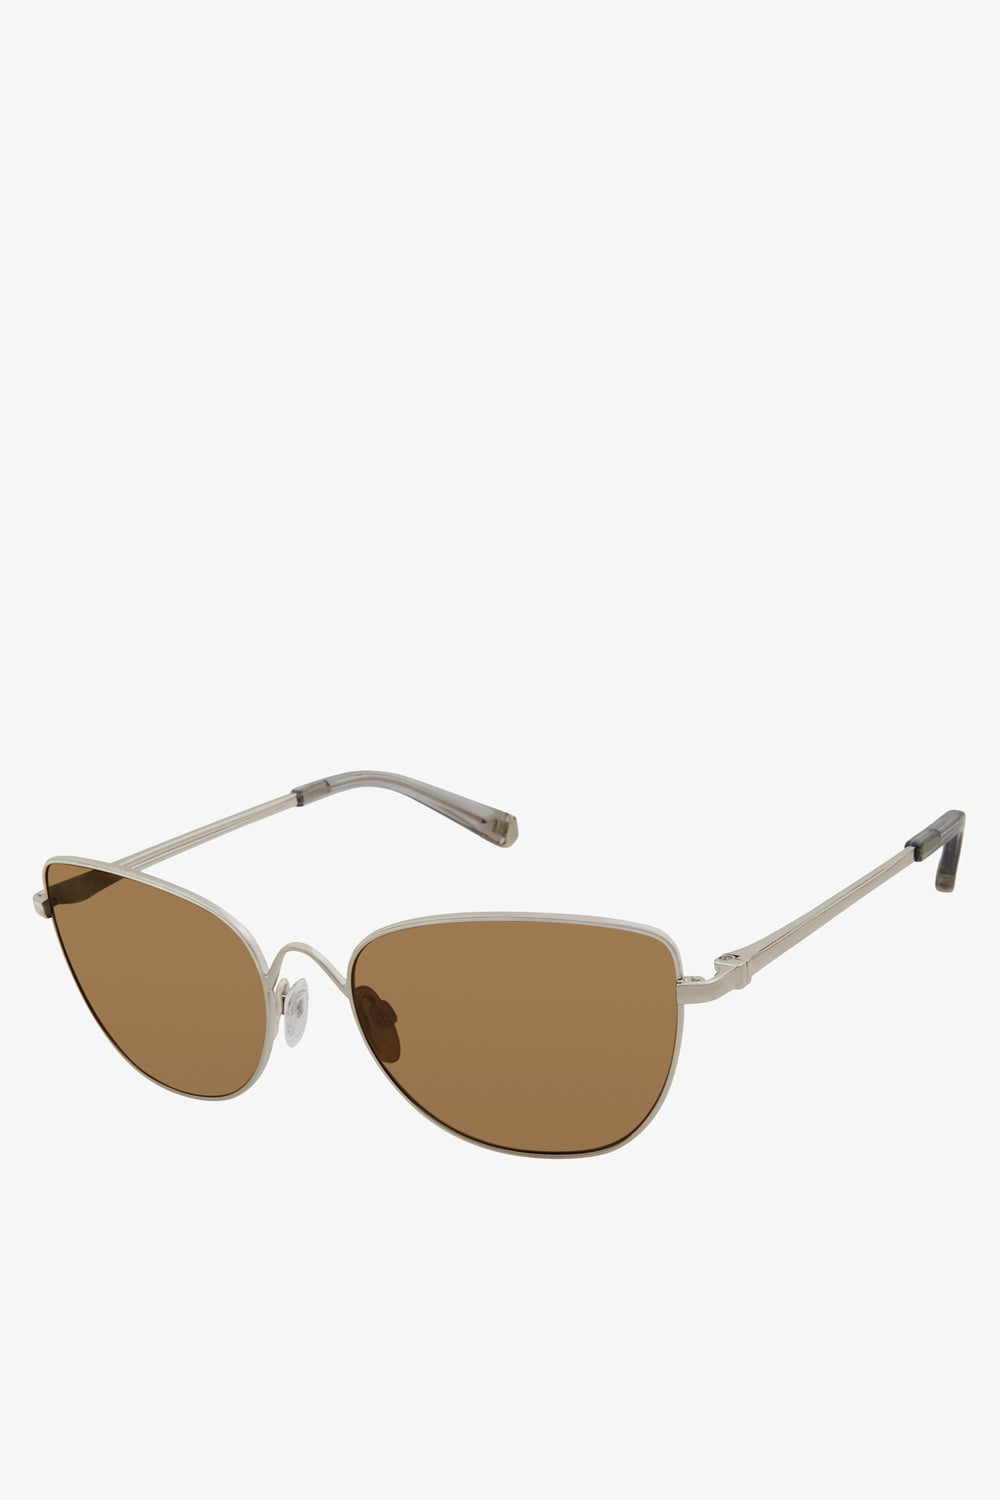 Kaela Sunglasses in Silver